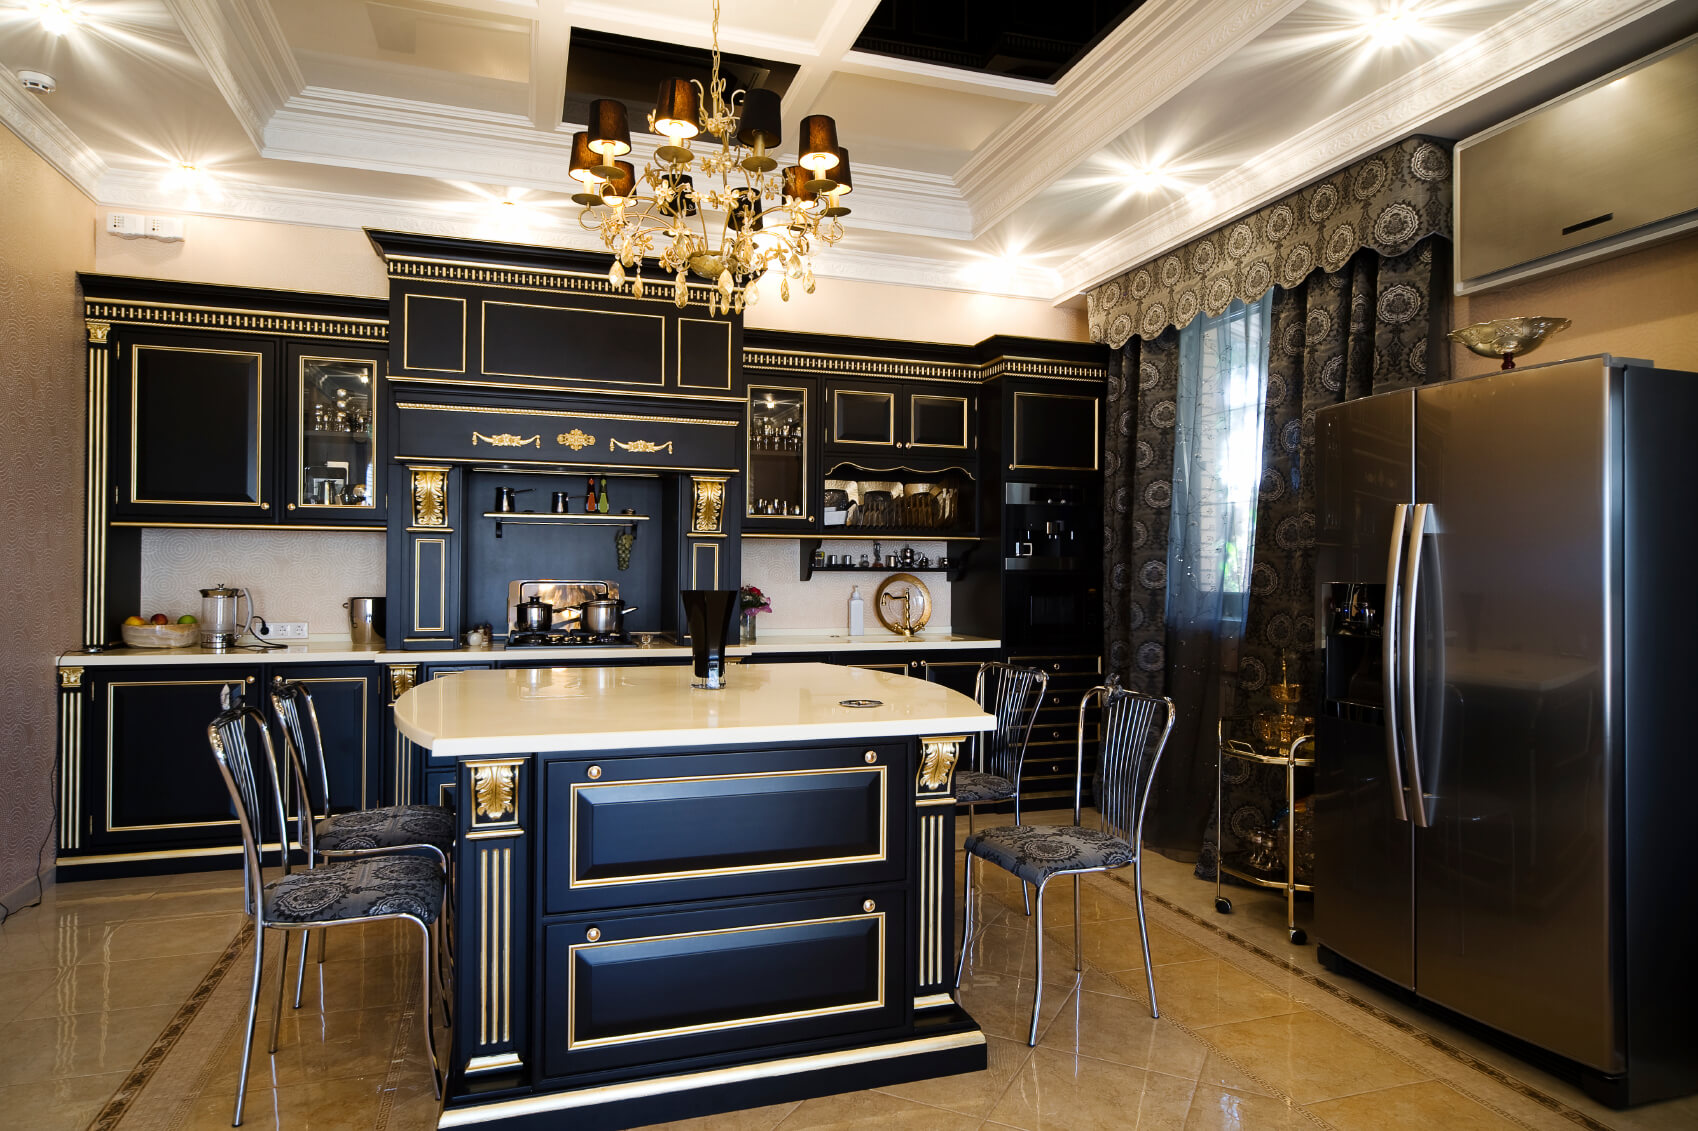 Ultra luxurious kitchen features gilded black wood cabinetry over beige marble flooring. White marble countertops and backsplash fills out the space.